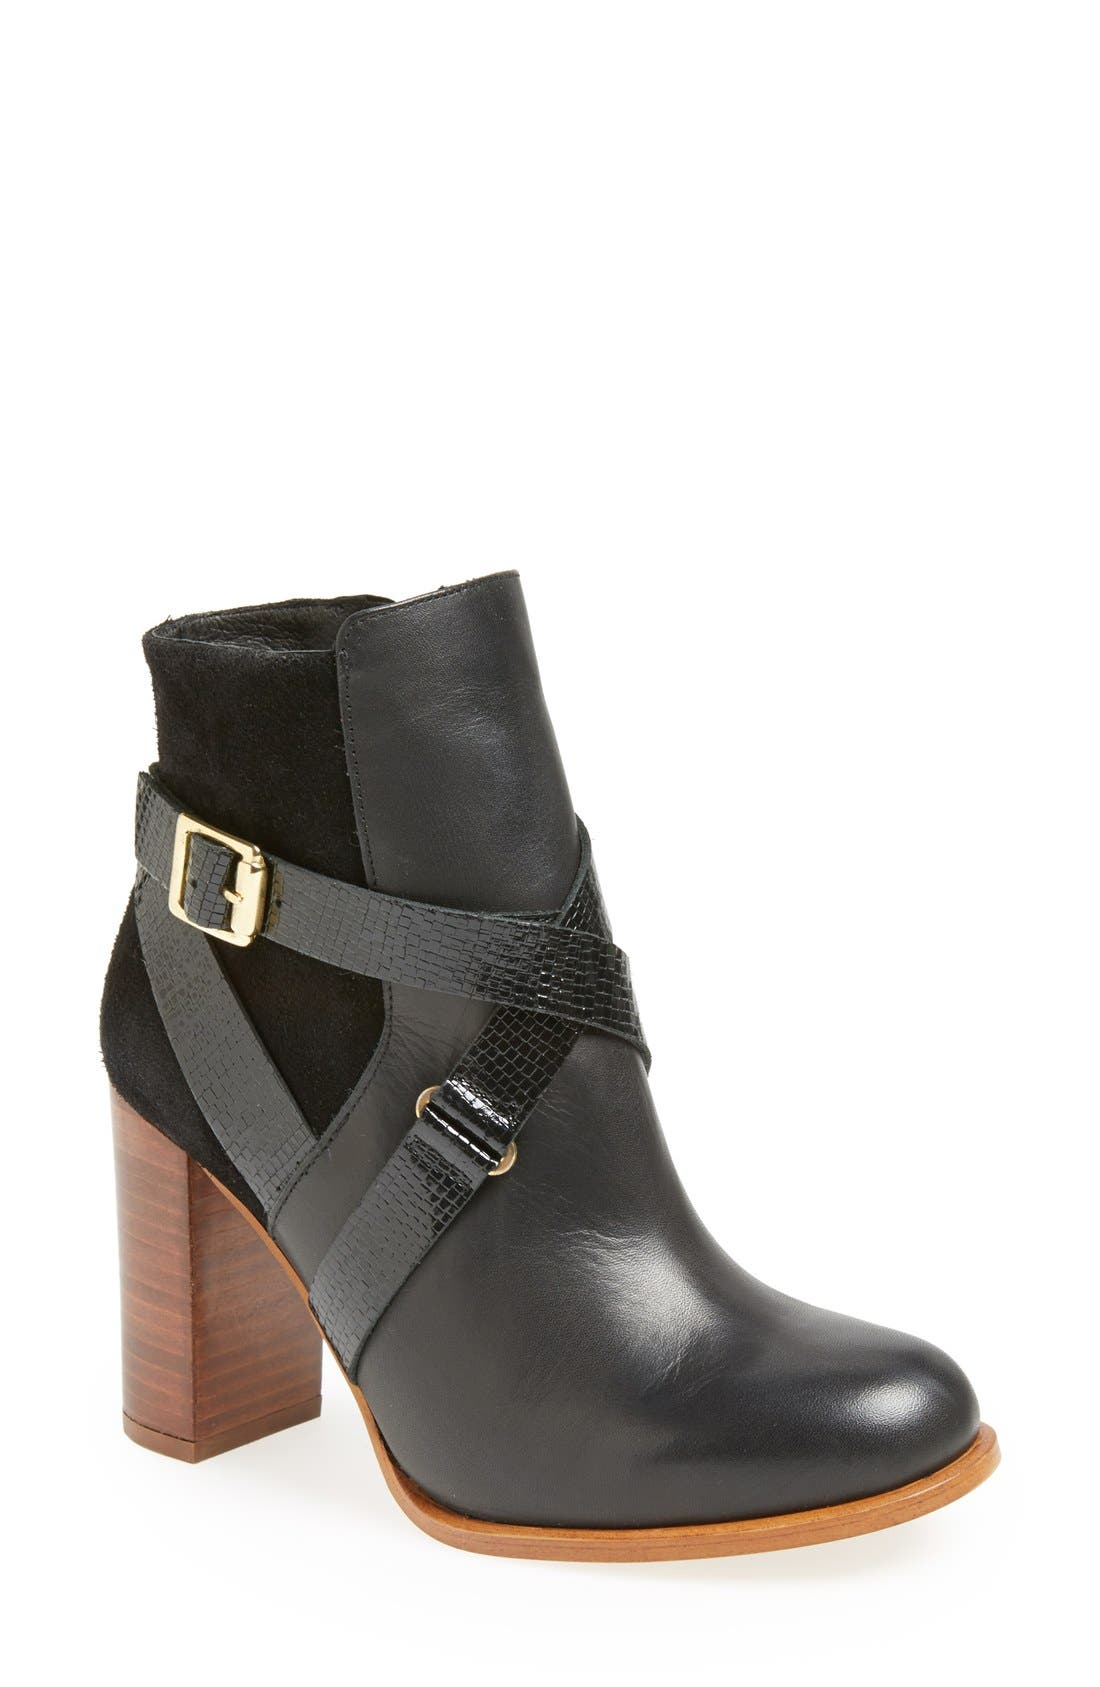 Main Image - Topshop 'Aroma' Ankle Boot (Women)